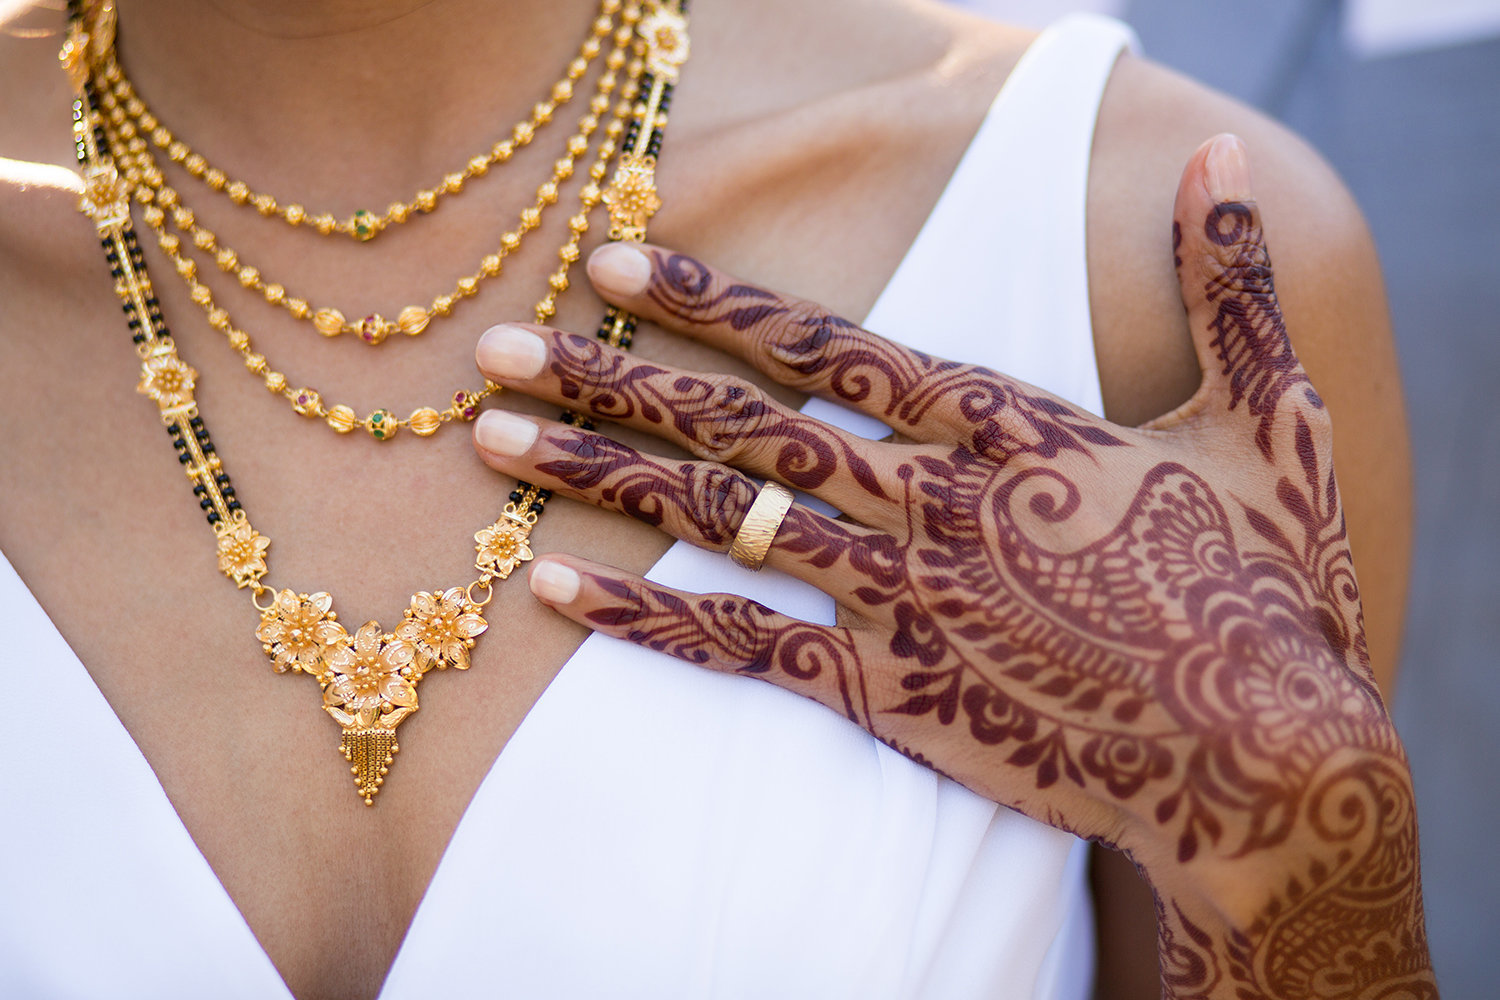 Detail on Henna and Jewelry at an Indian Hindu Wedding Ceremony